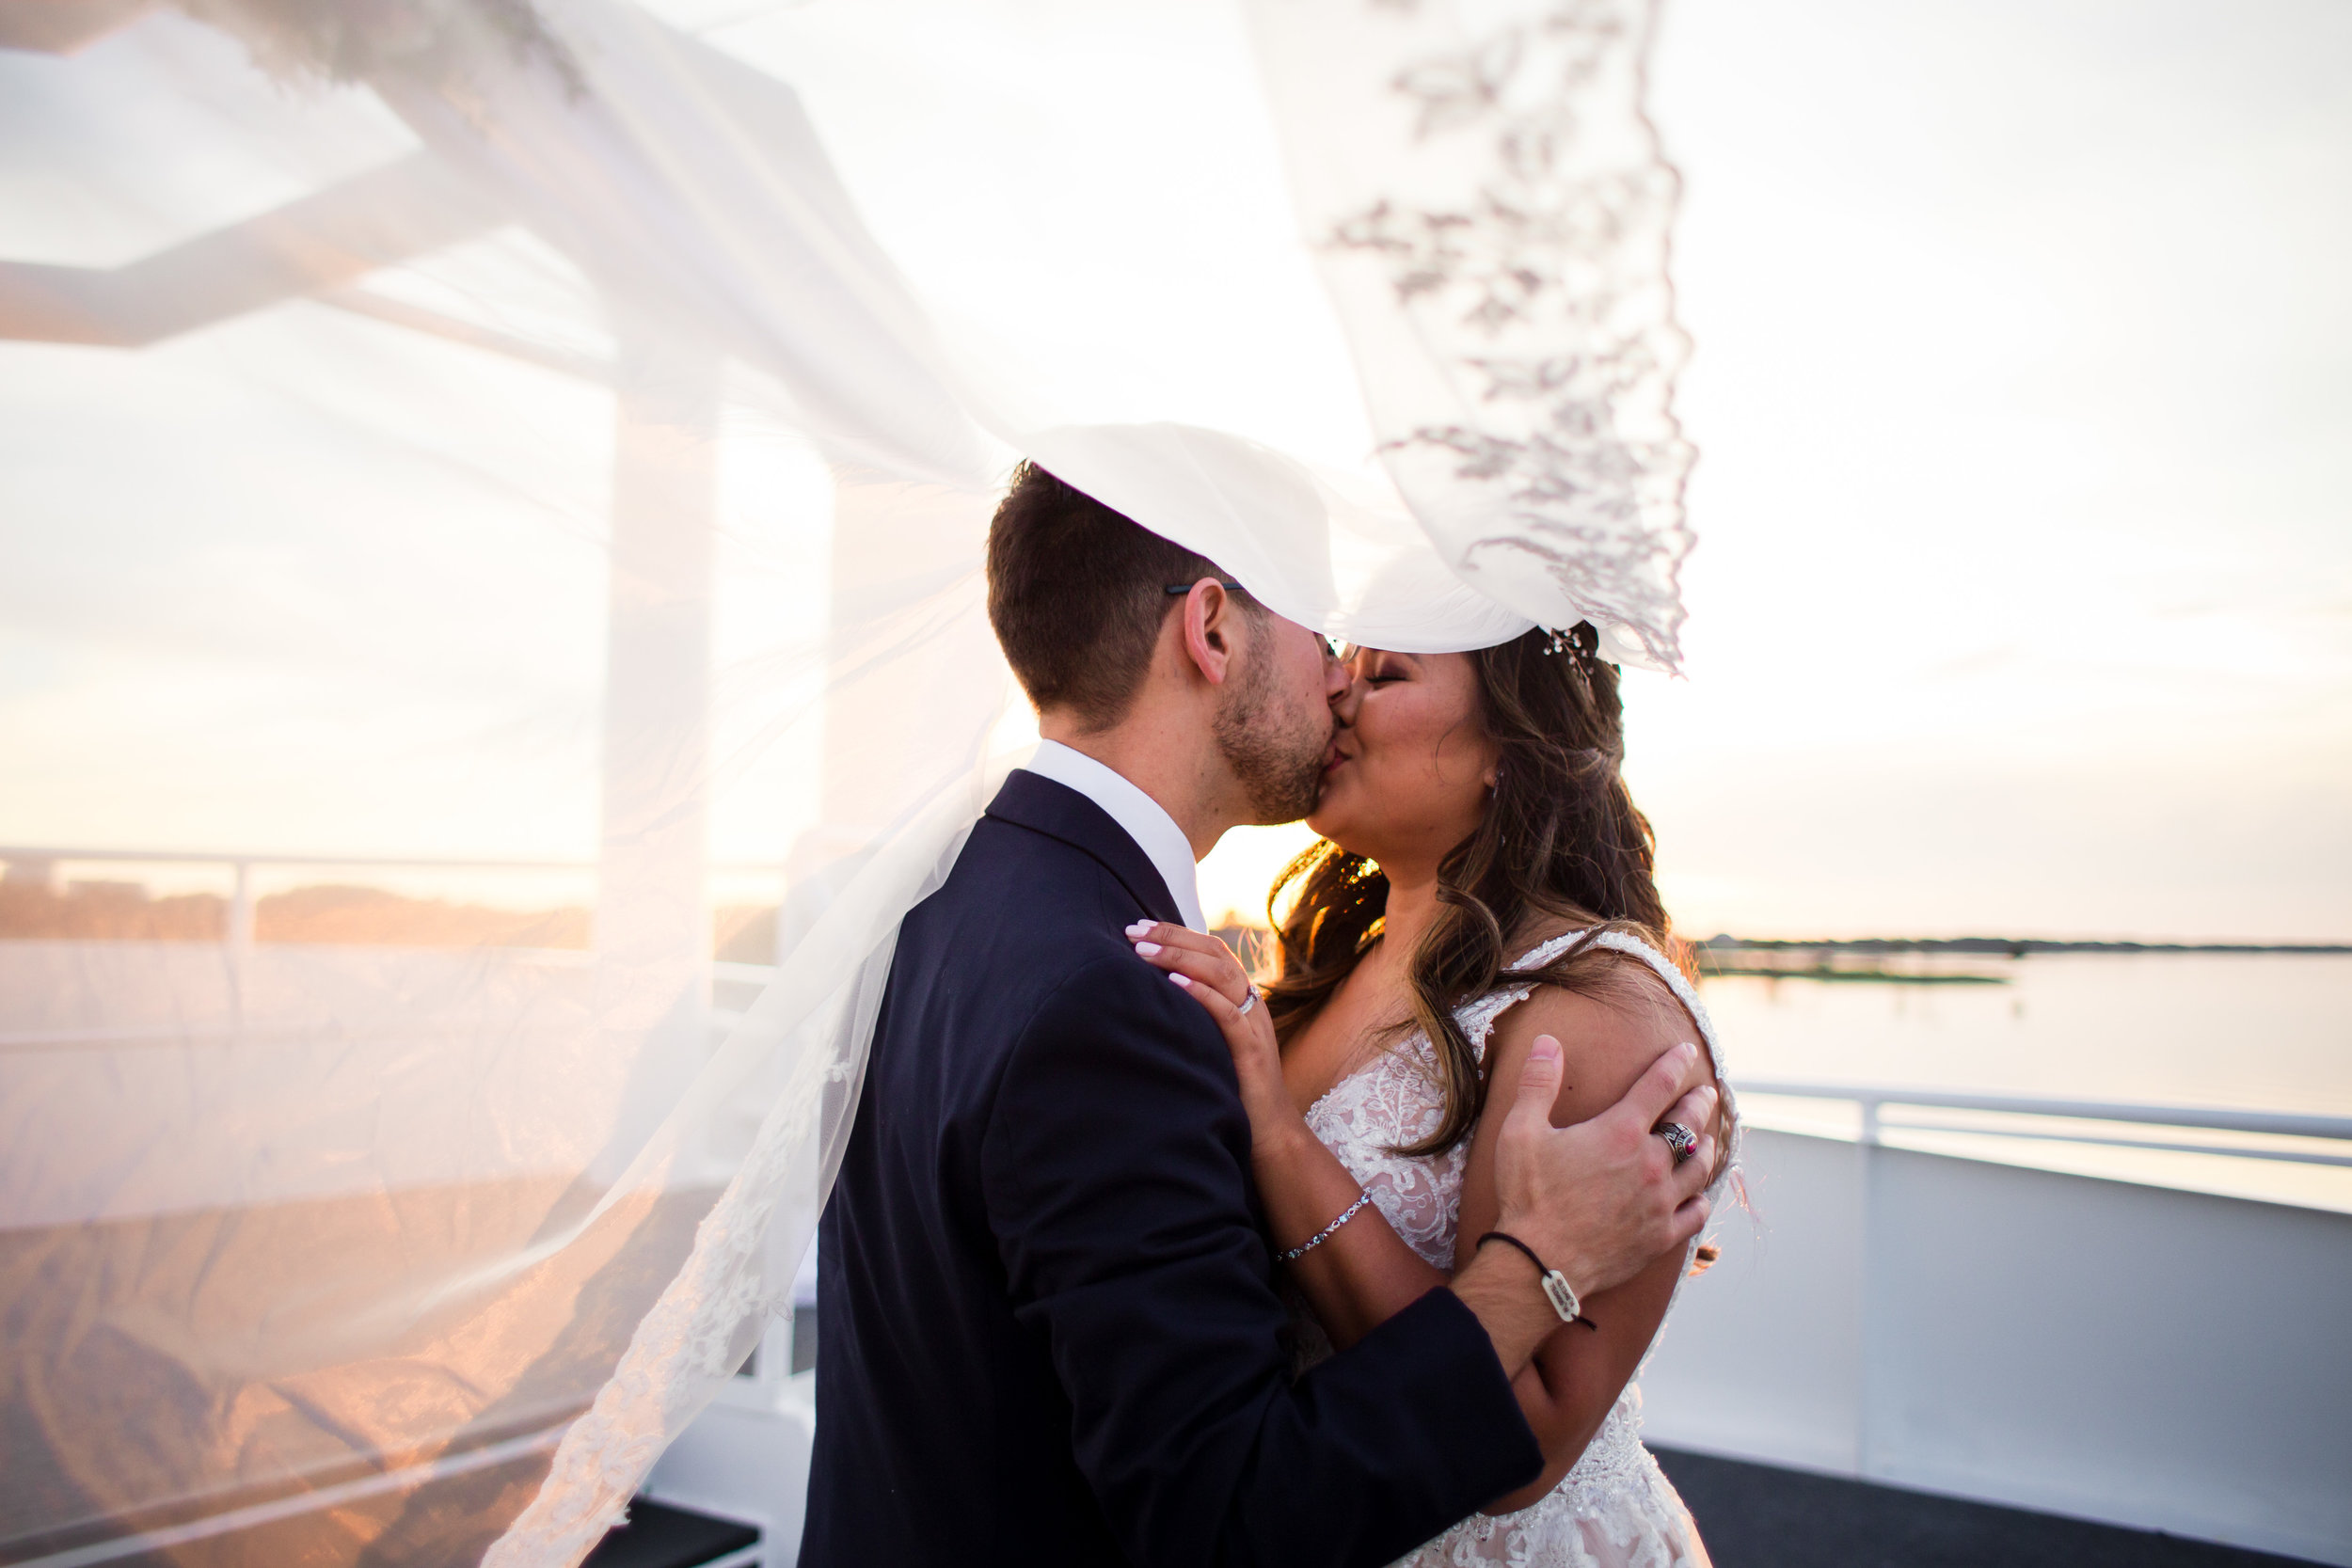 Solaris-Yacht-Destin-Florida-Wedding-Photography-Jerica-Chad-29.jpg